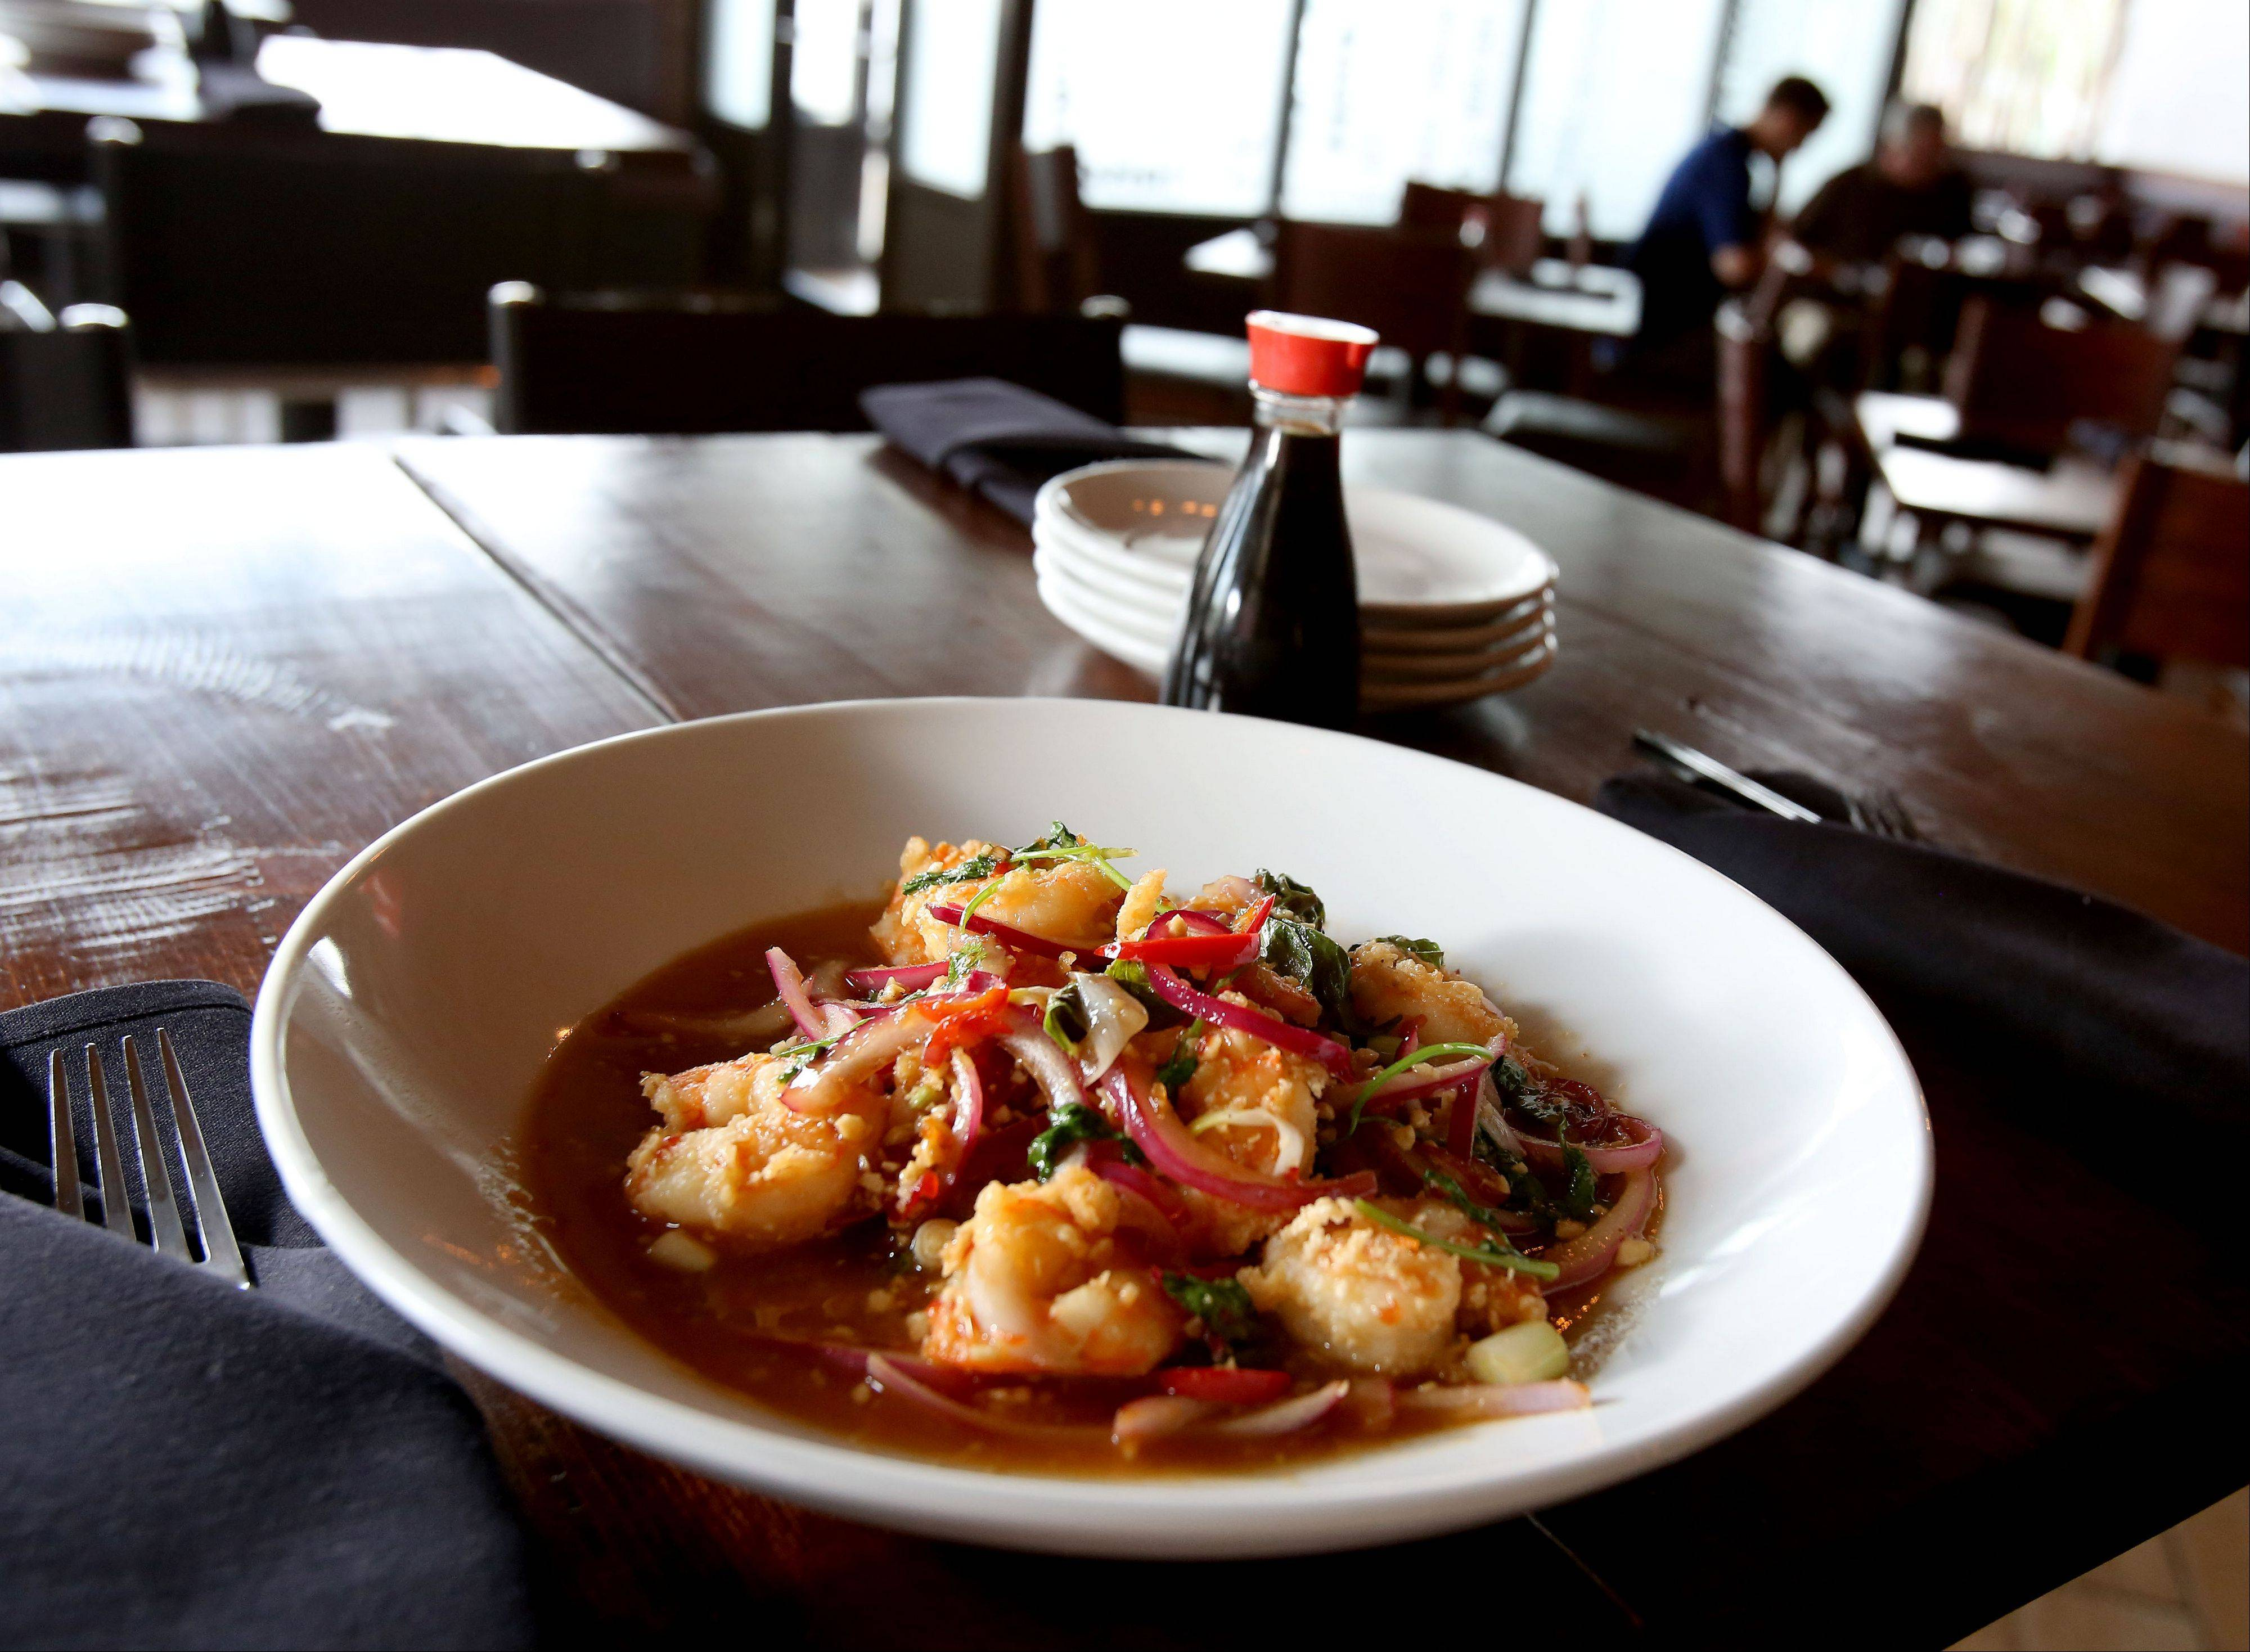 8,000 Miles' Thai basil shrimp draws flavor from its wild-caught seafood, Thai basil leaves, cilantro, red onions, roasted peanuts and cherry chilies.